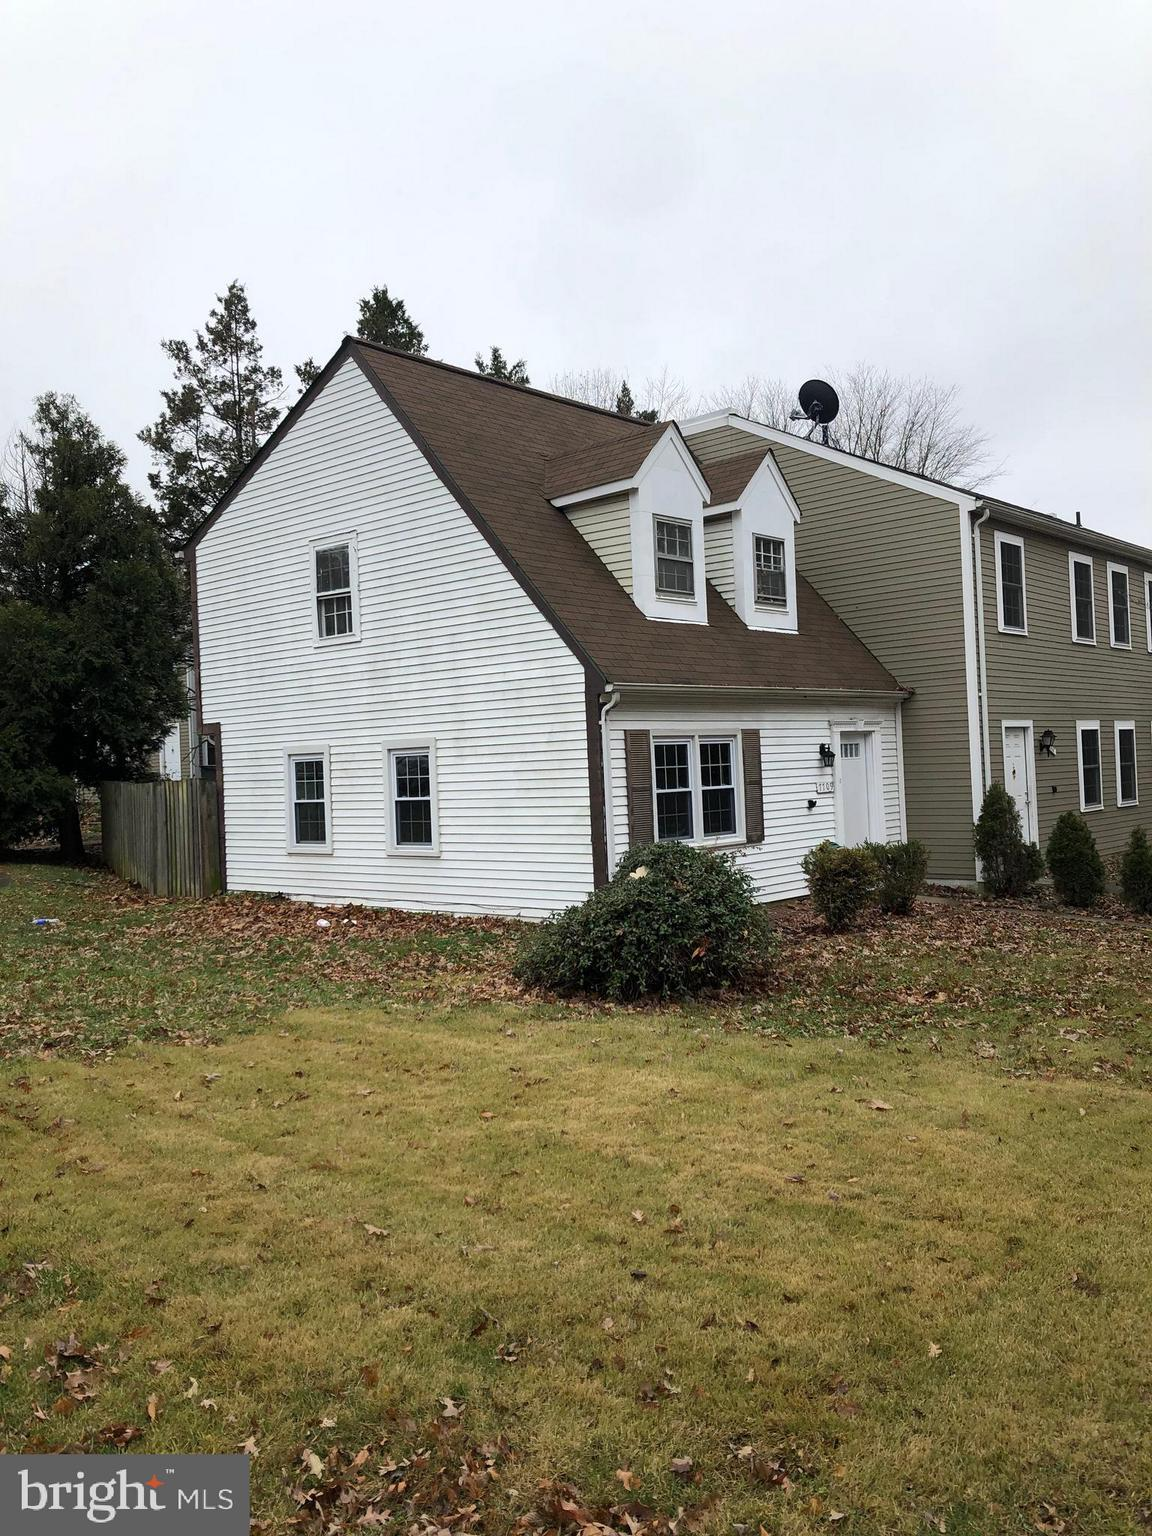 One of lowest priced end unit townhouses in Fairfax county.  Close to all major roads. nicely upgraded and ready for the new owner. Fresh paint and new carpet. Fenced backyard with a shed and ample space for your BBQ and outdoor entertainment. Motivated seller.